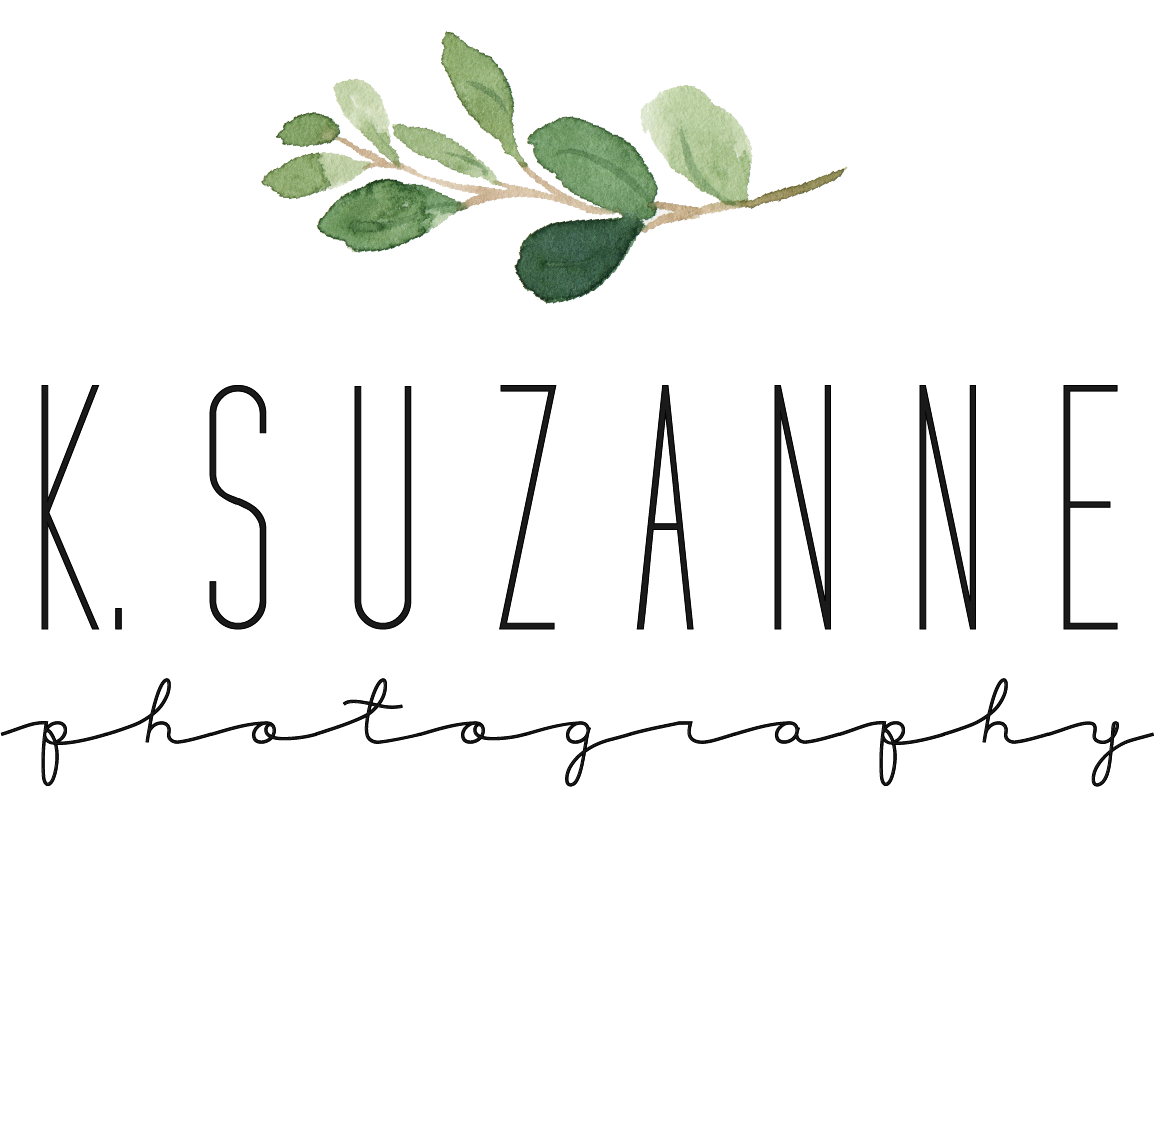 k. suzanne photography